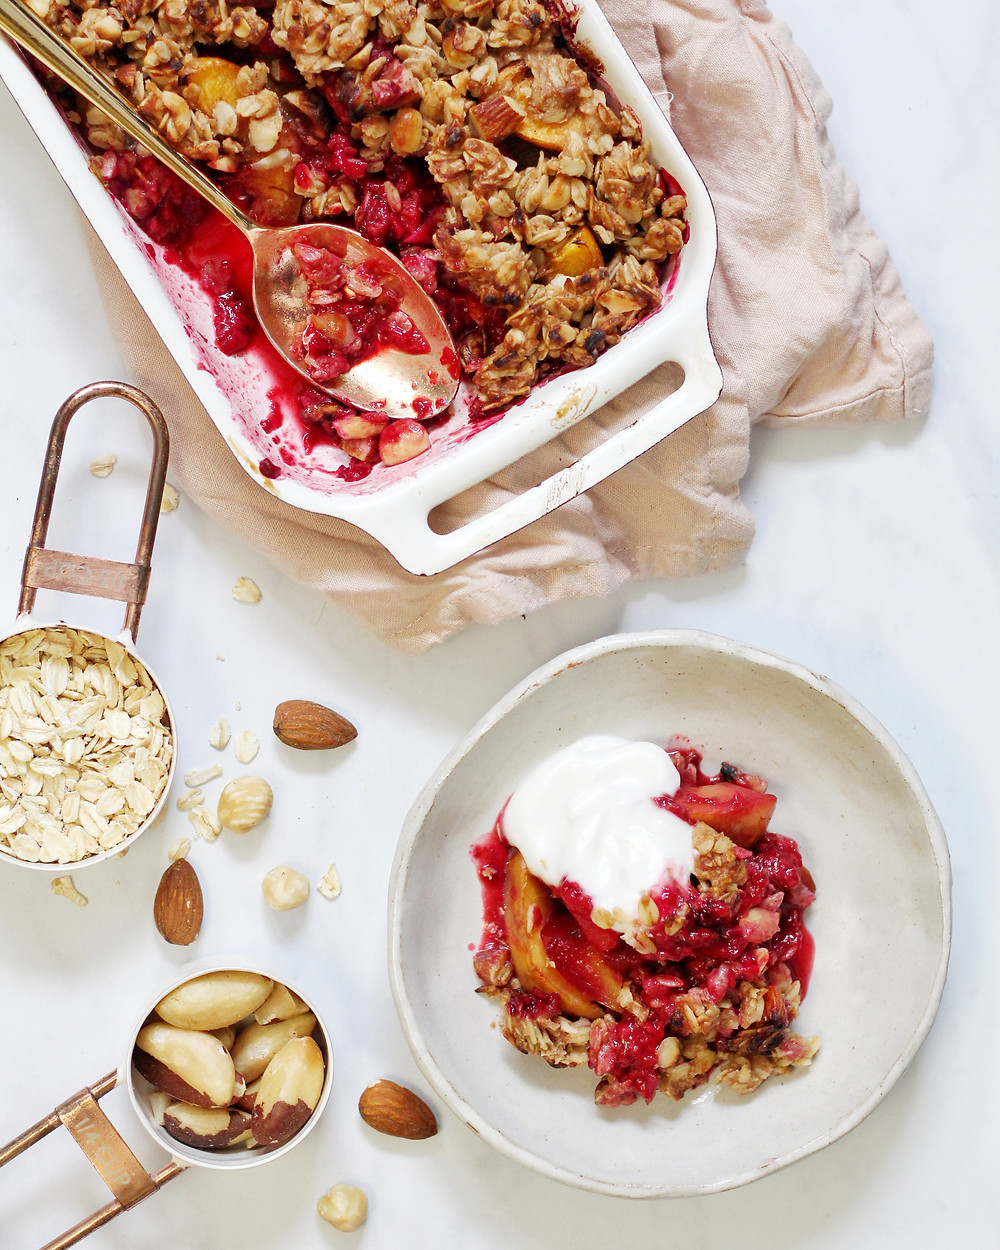 Nectarine and Raspberry Crumble Recipe